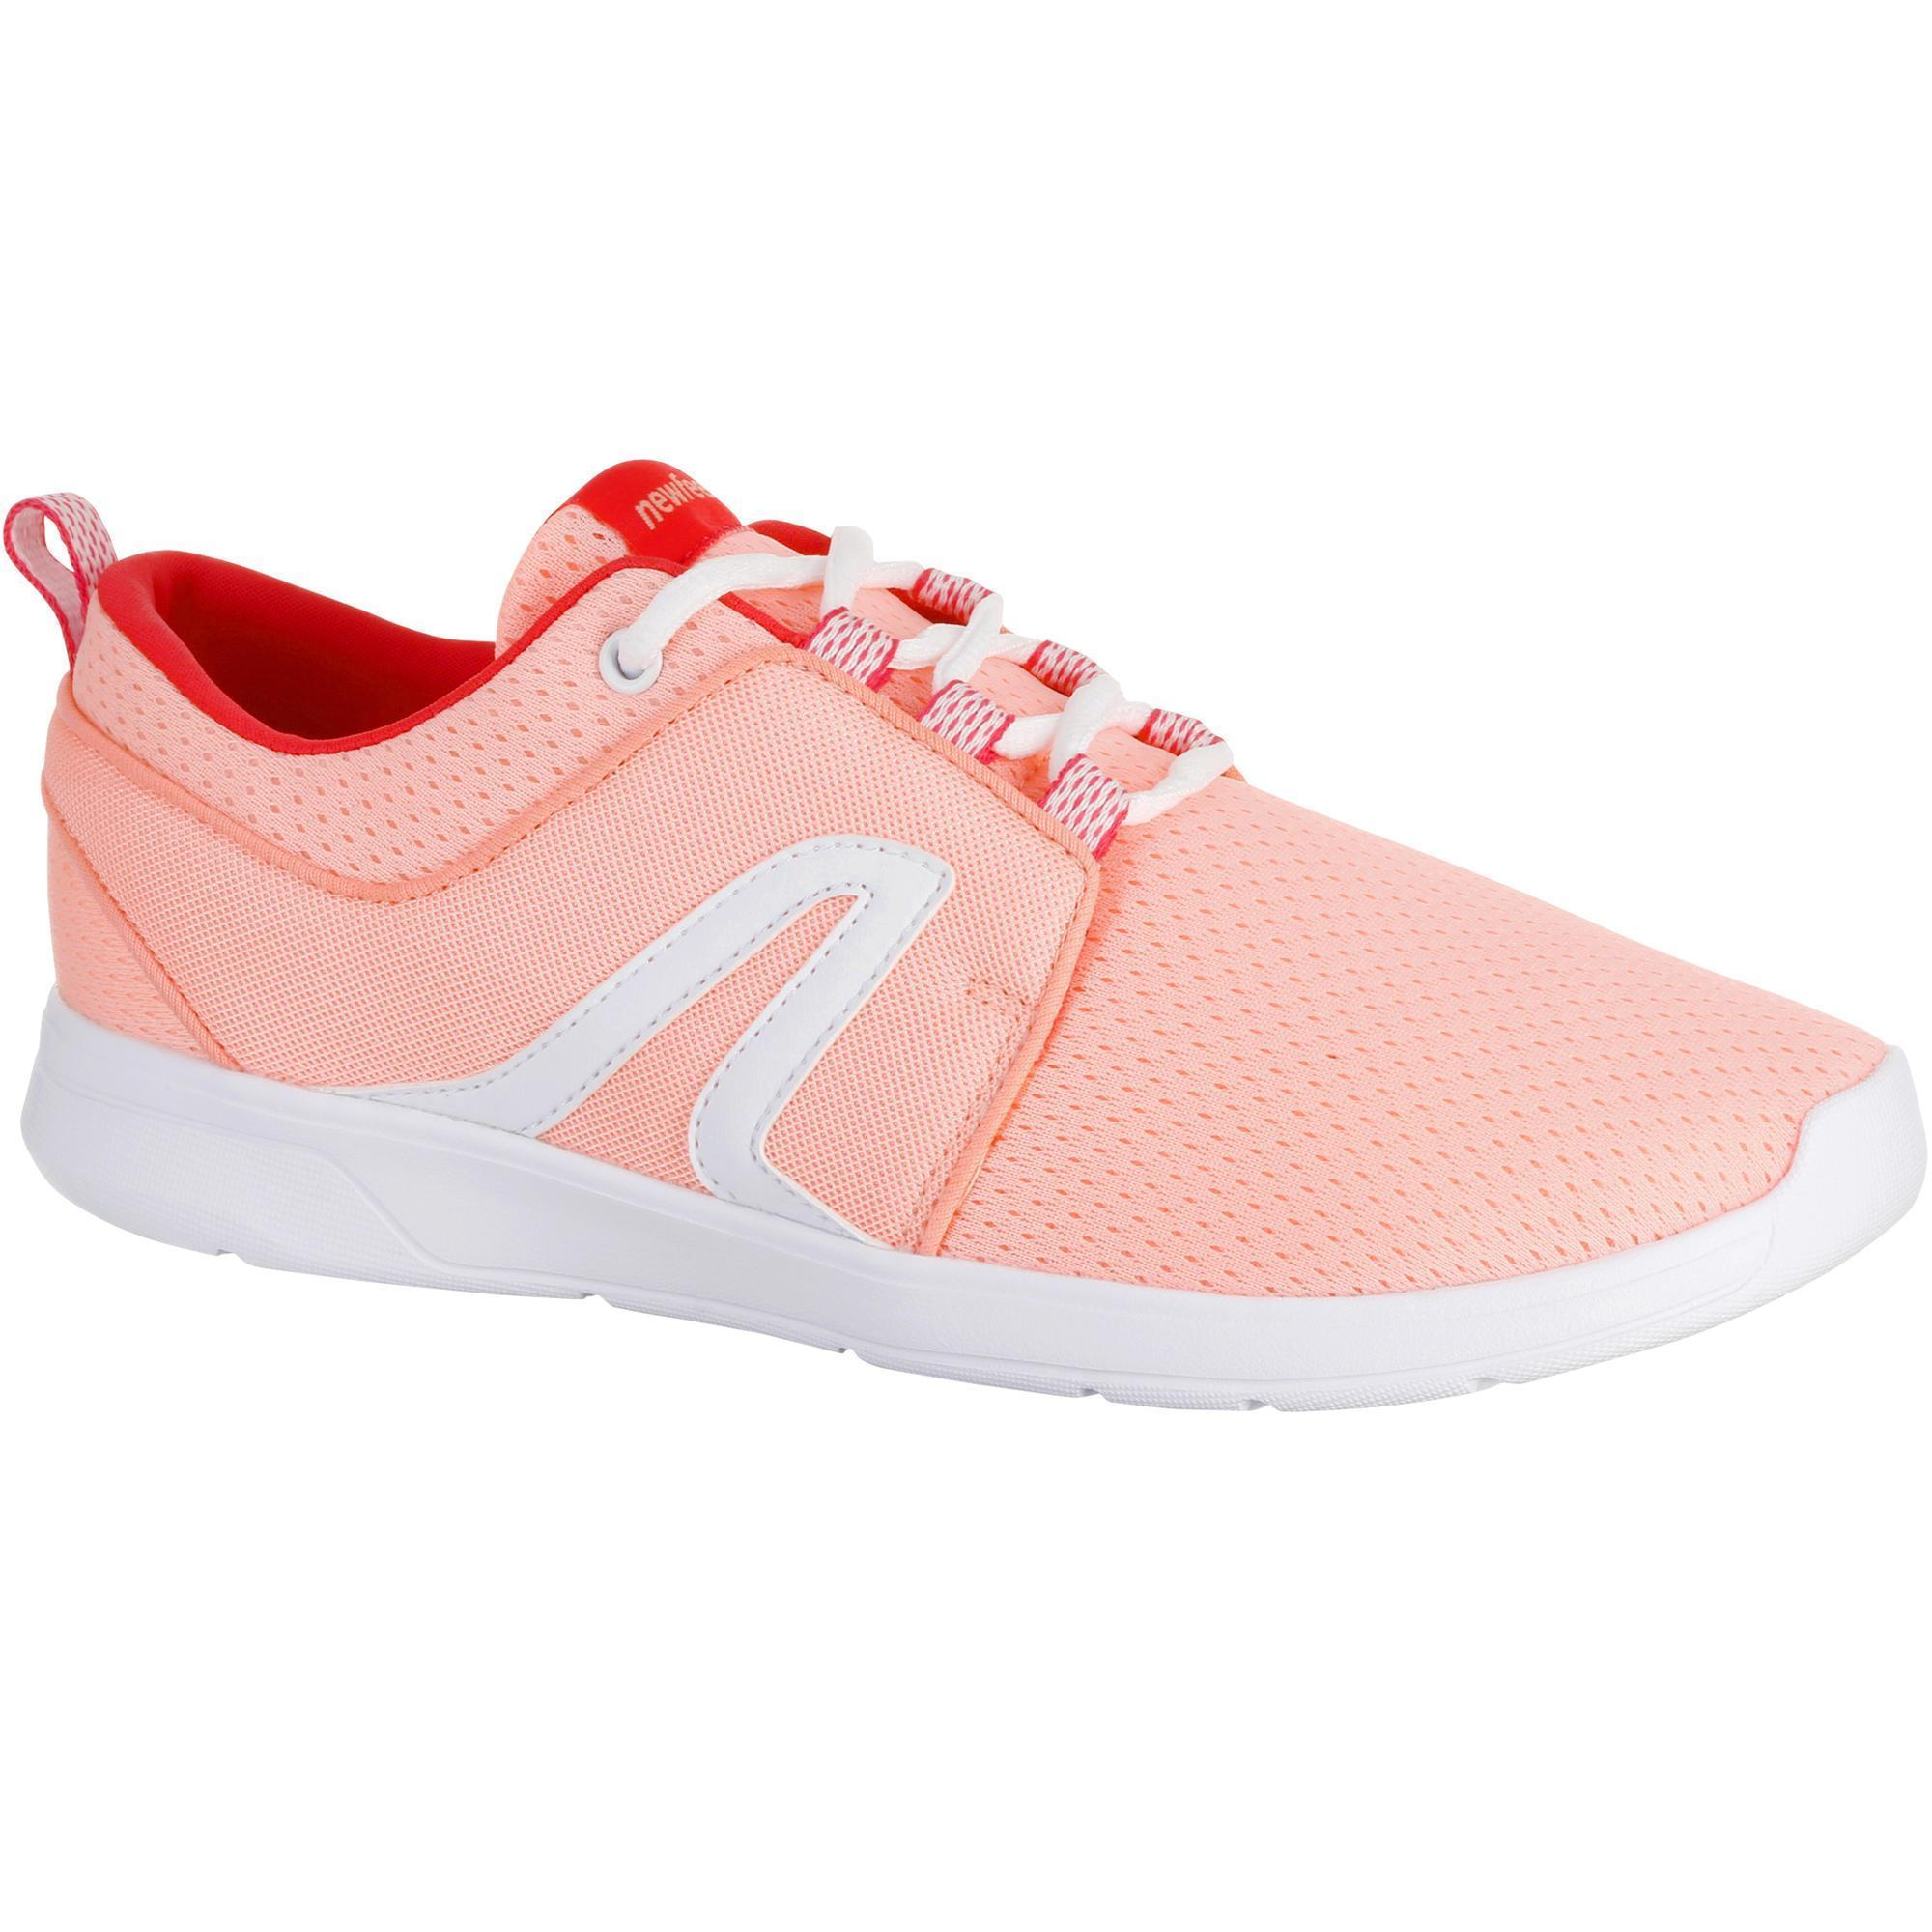 8a5a09bee92 ... chaussures marche sportive femme soft 140 rose newfeel